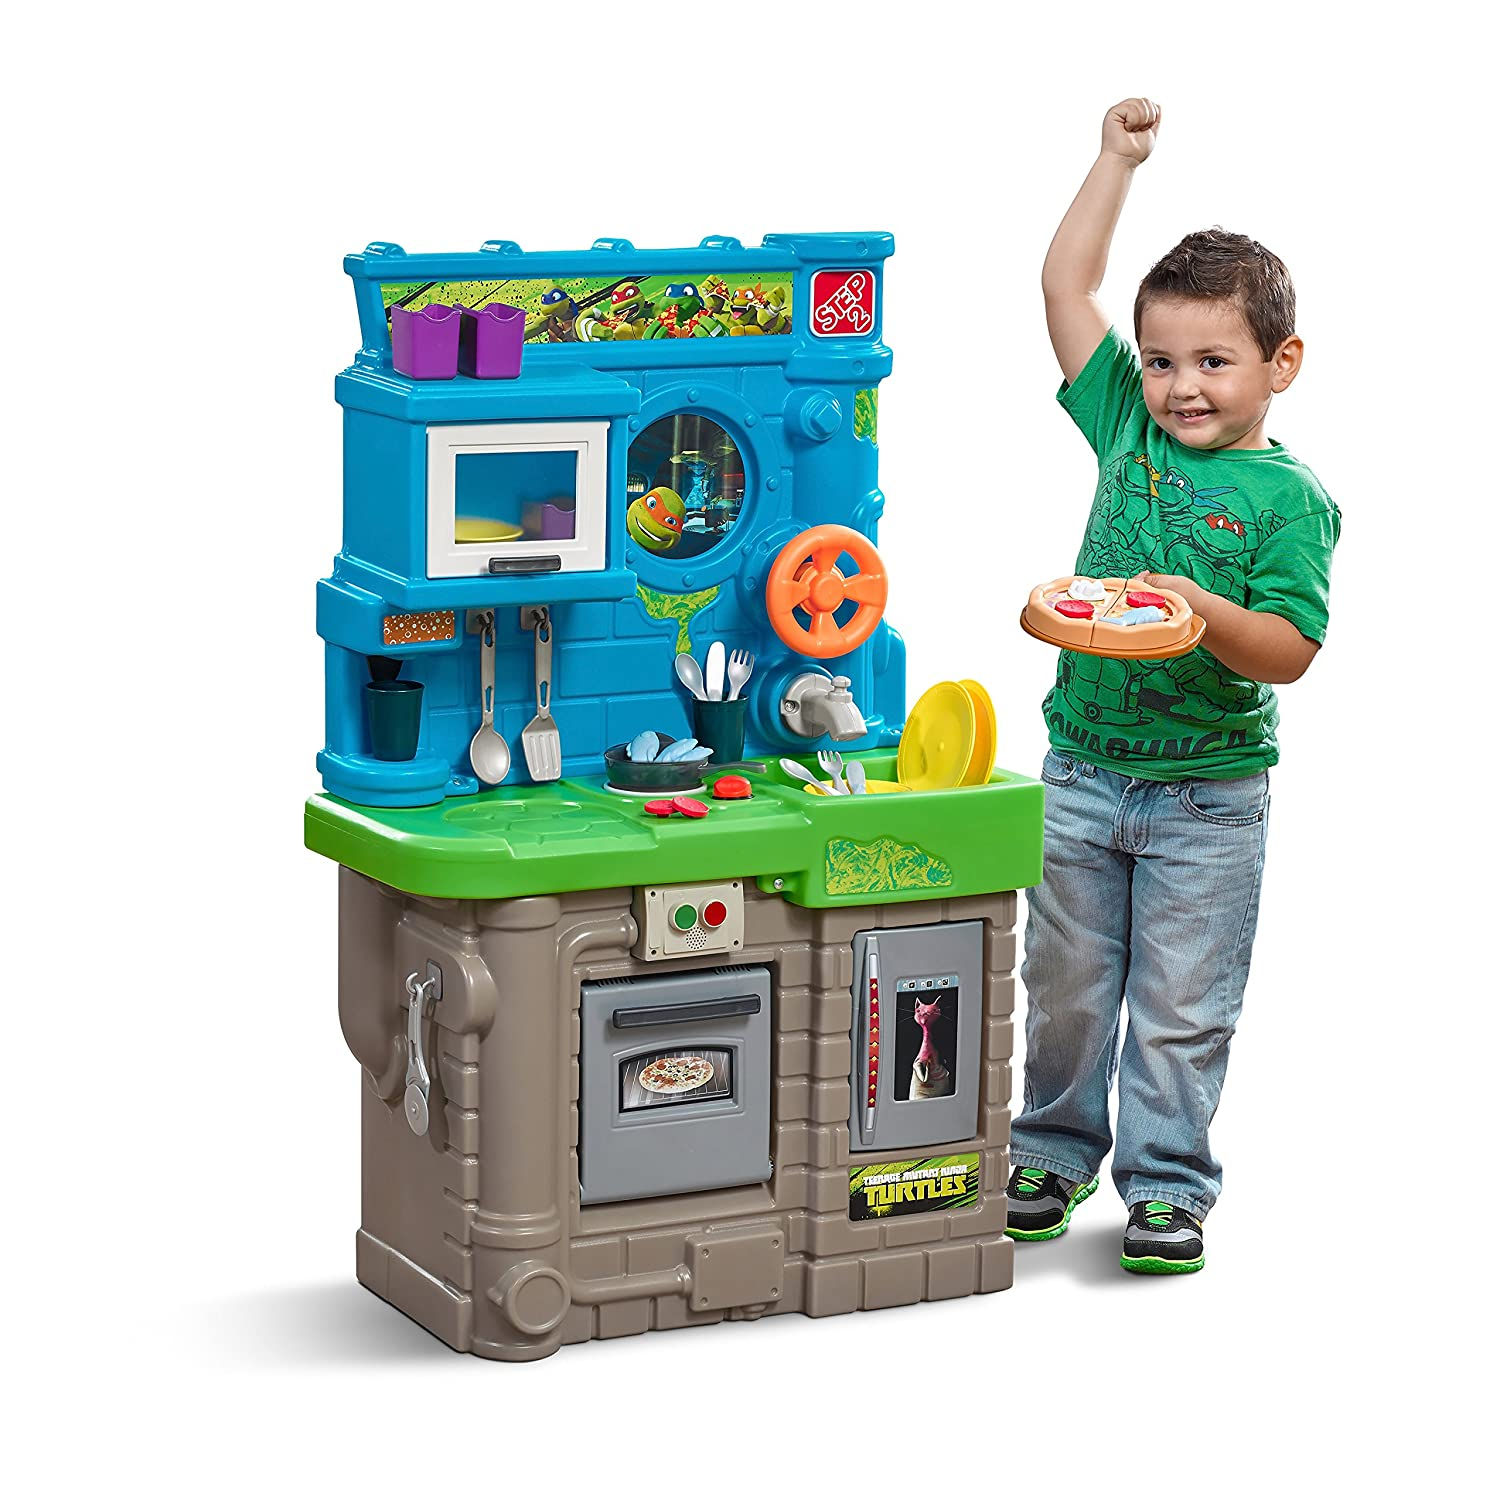 Amazon.com: Step2 Teenage Mutant Ninja Turtles Pizza Kitchen Playset ...